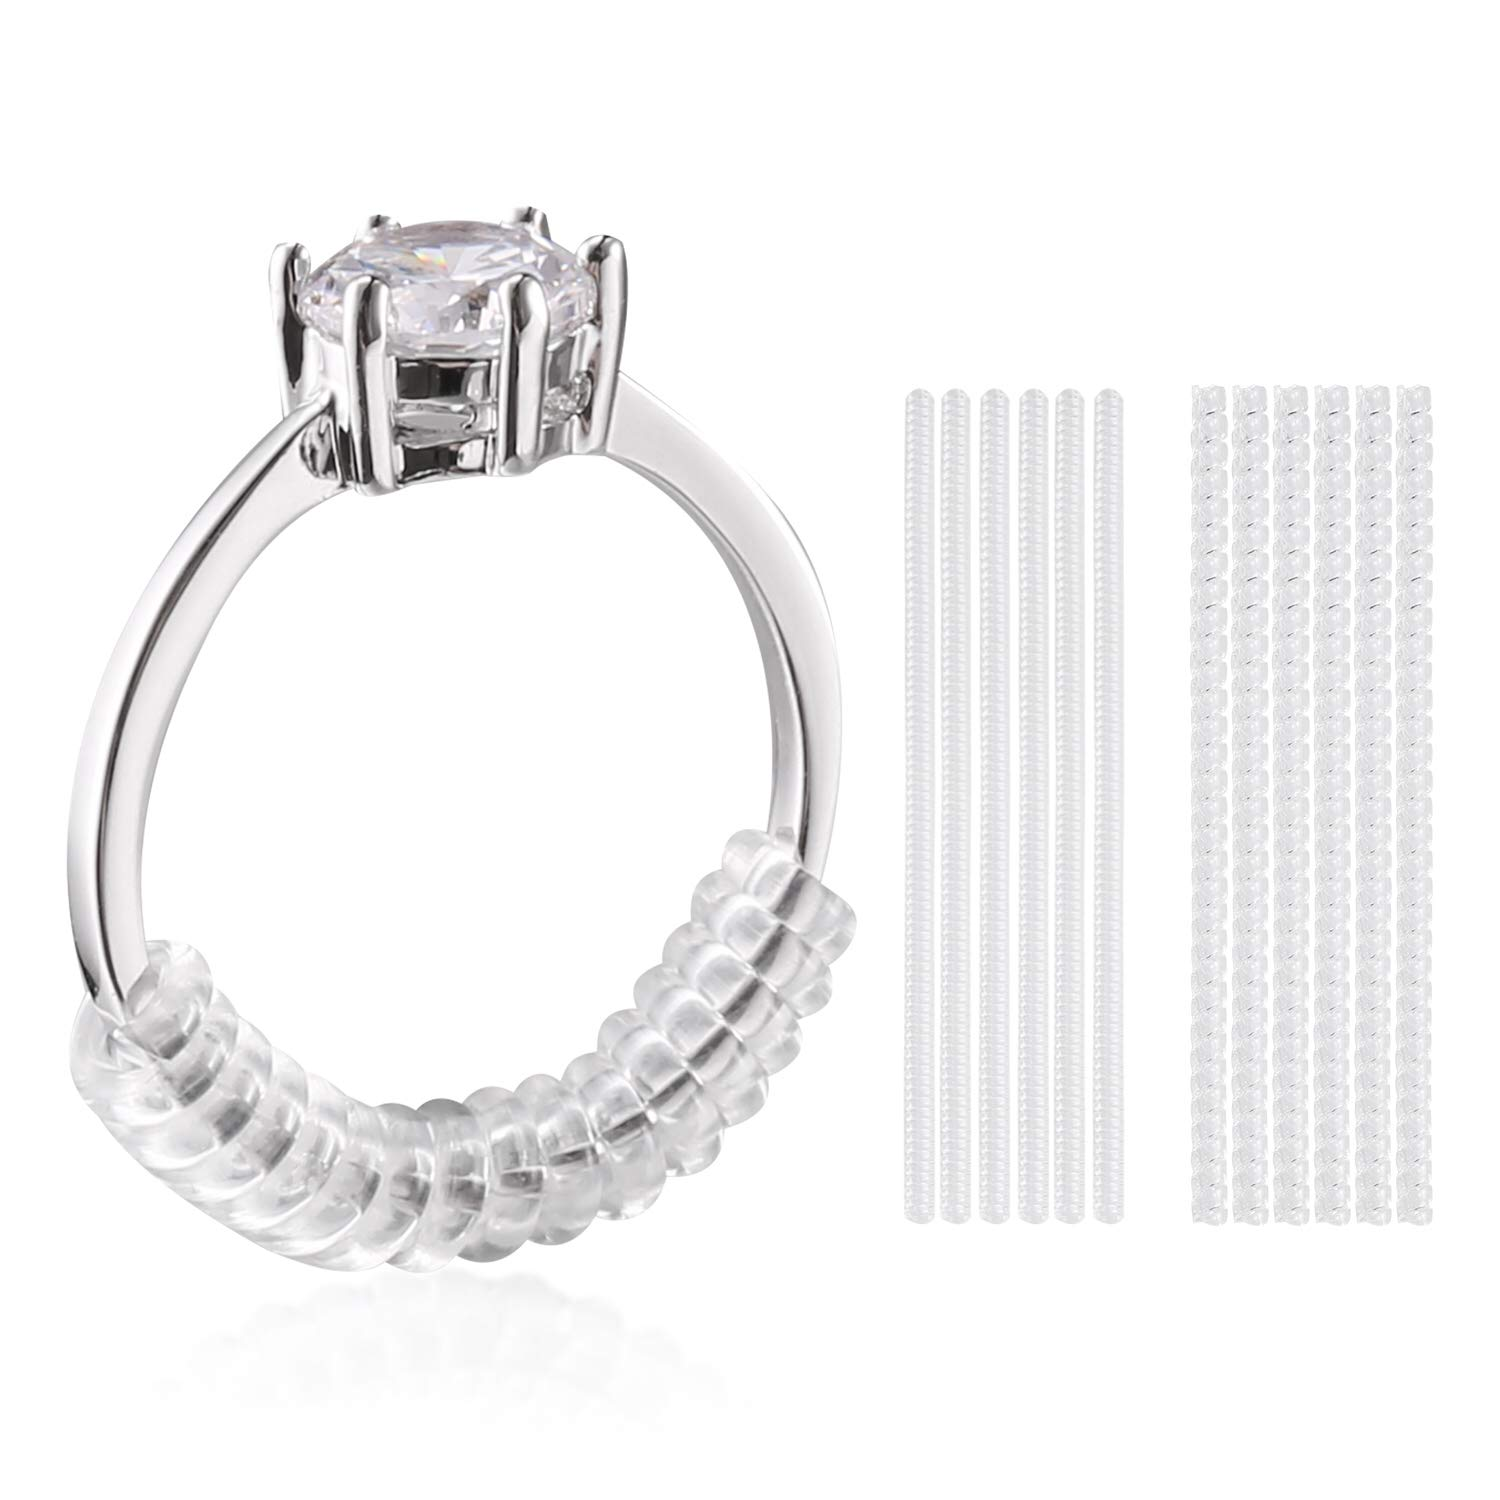 Ring Size Adjuster for Loose Rings, Ring Guard with Sliver Polishing Cloth, Set of 12, 2 Sizes (2mm/3mm)   LOHOTEK